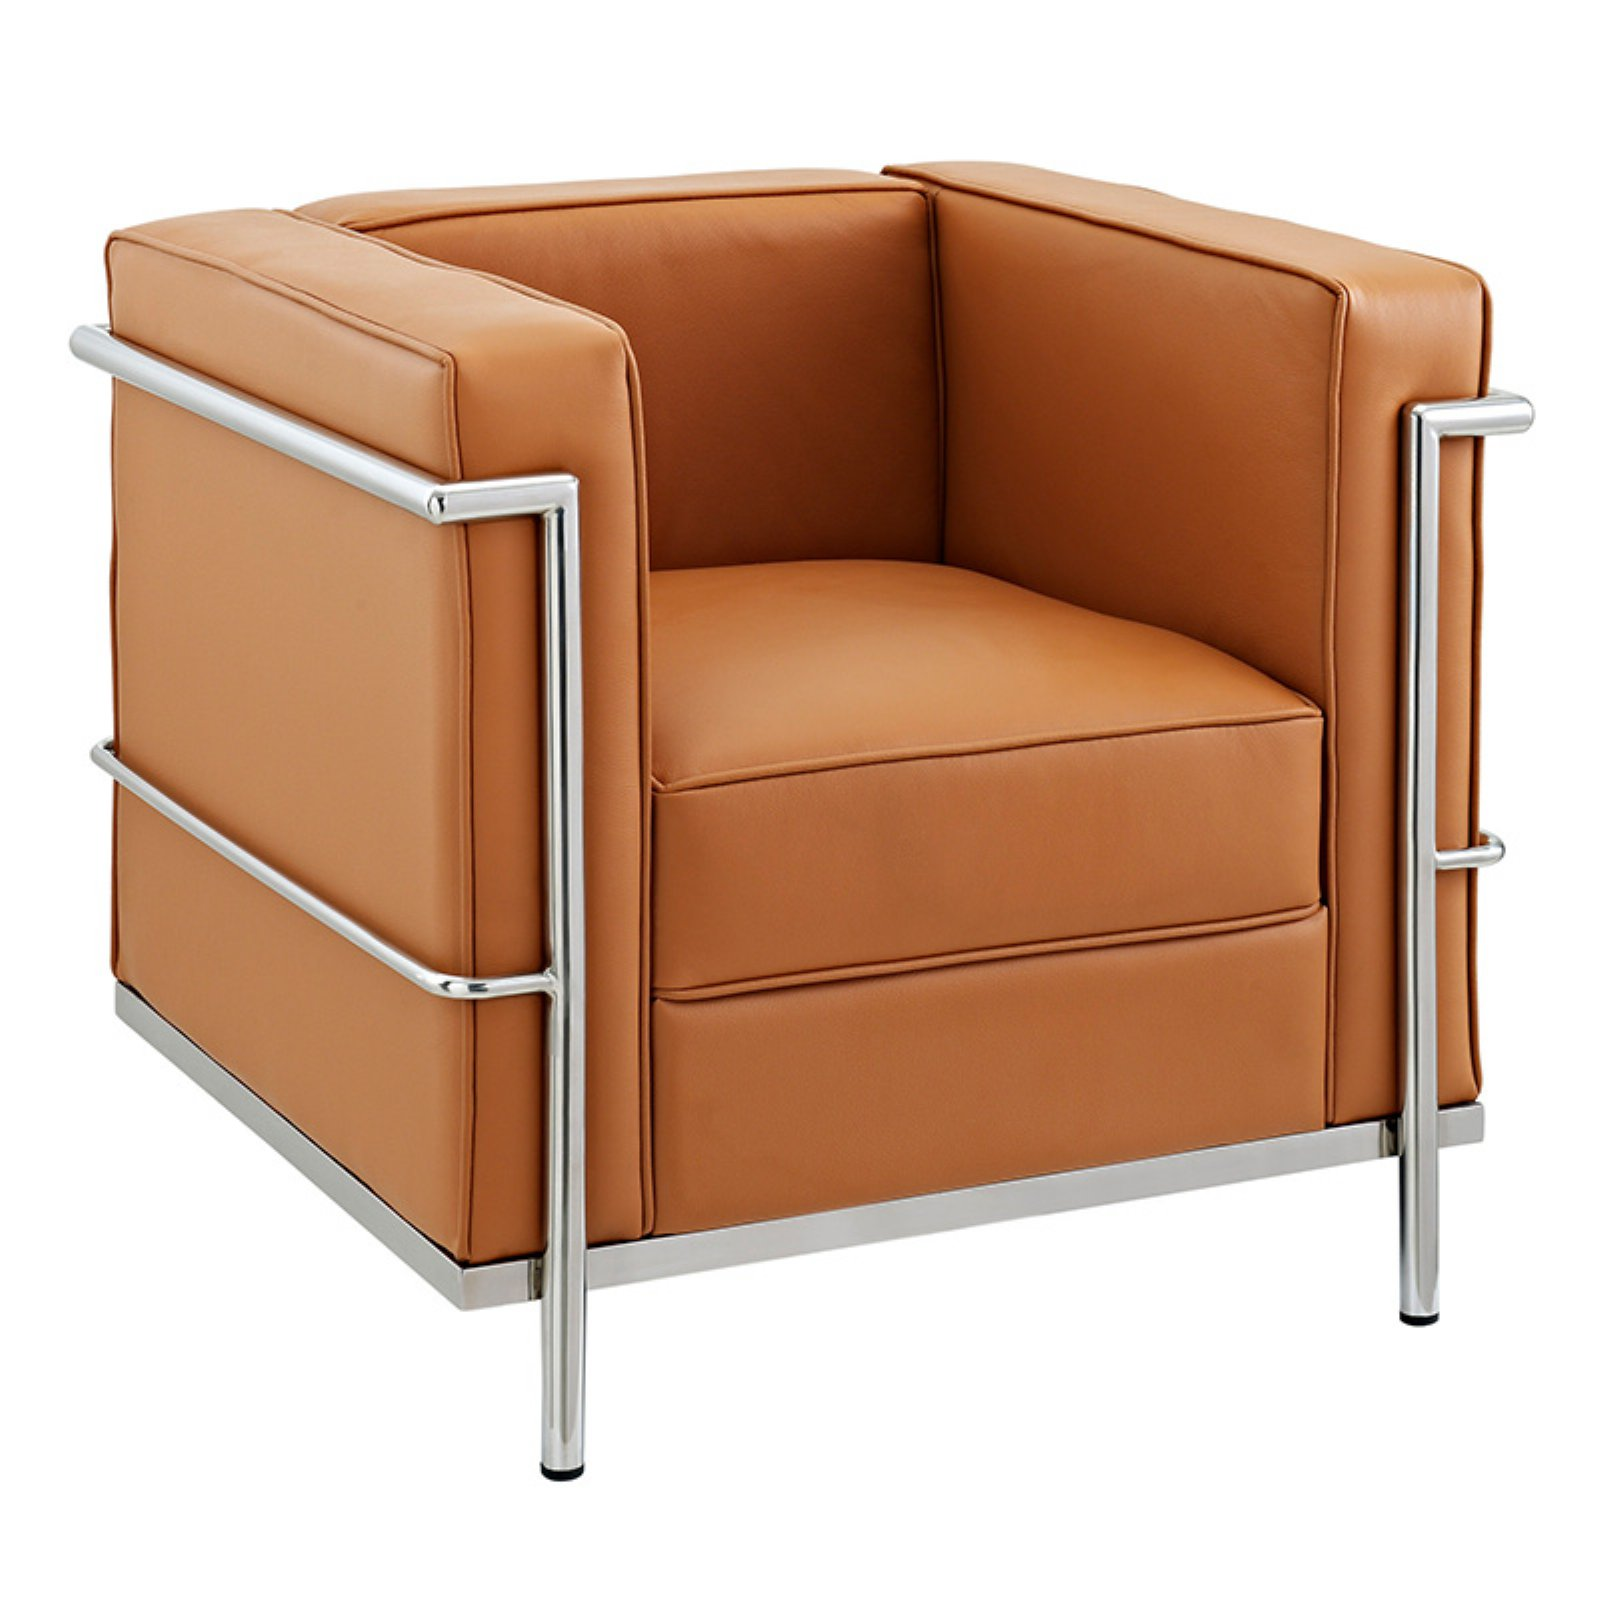 Modway LC2 Leather Armchair with Steel Frame, Multiple Colors